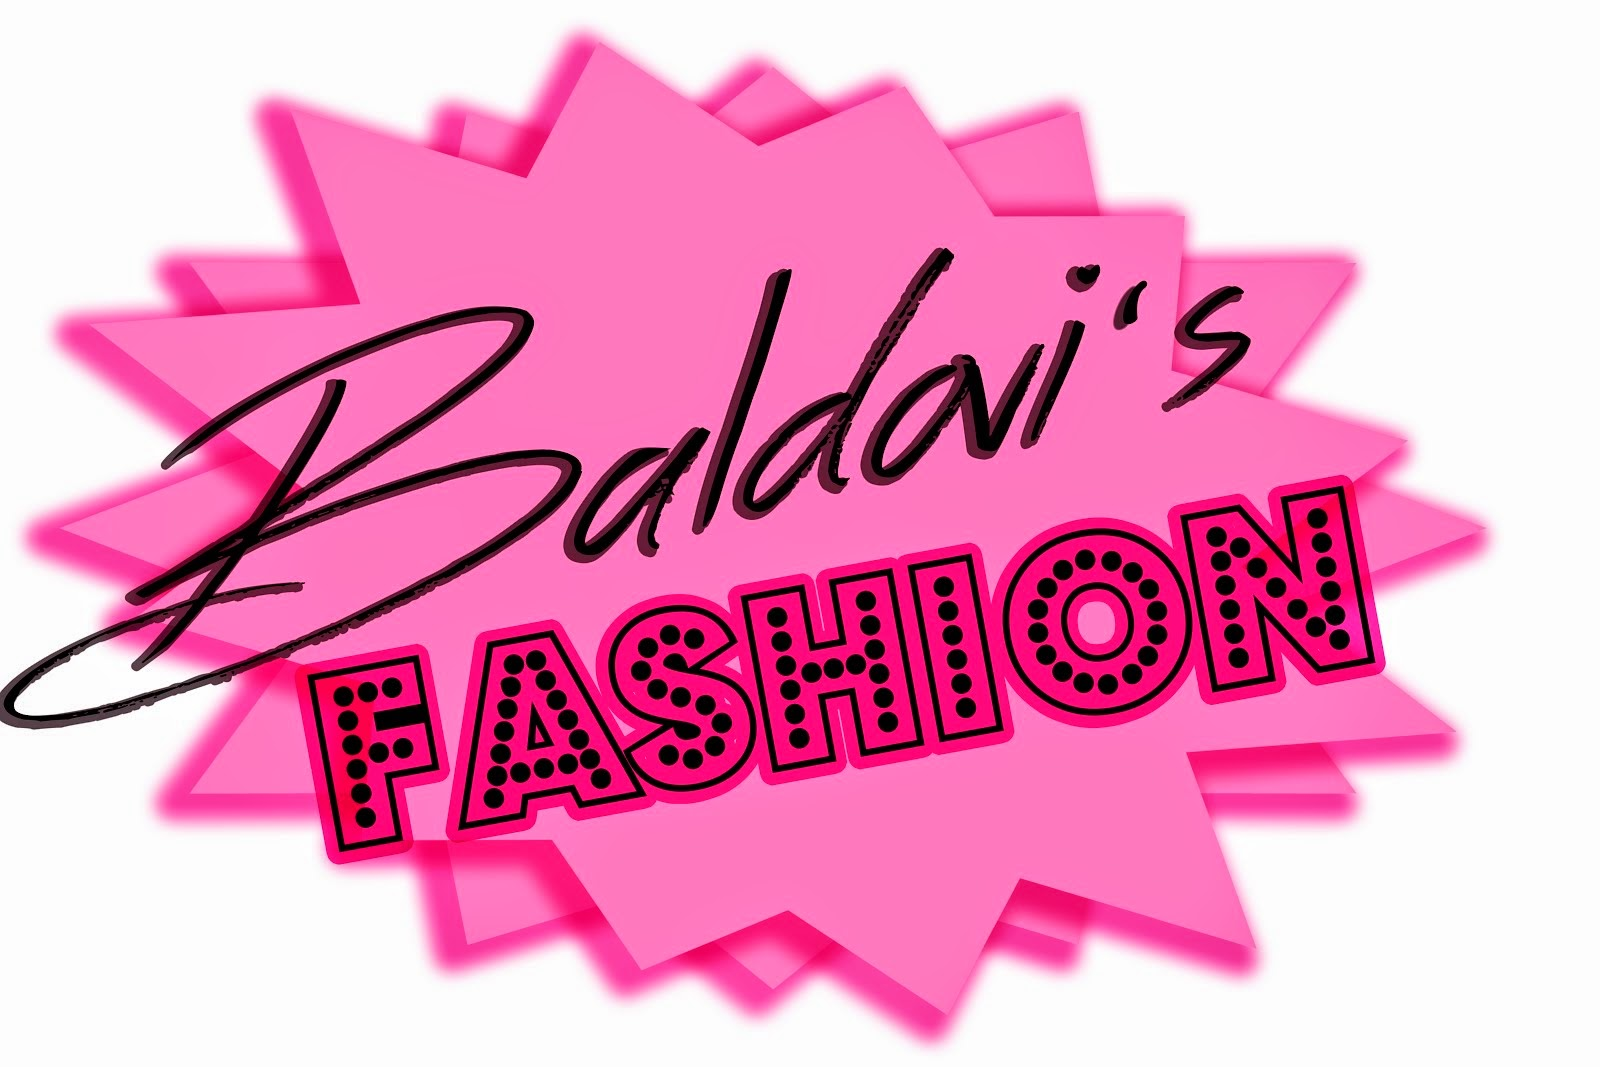 Baldovi´s fashion